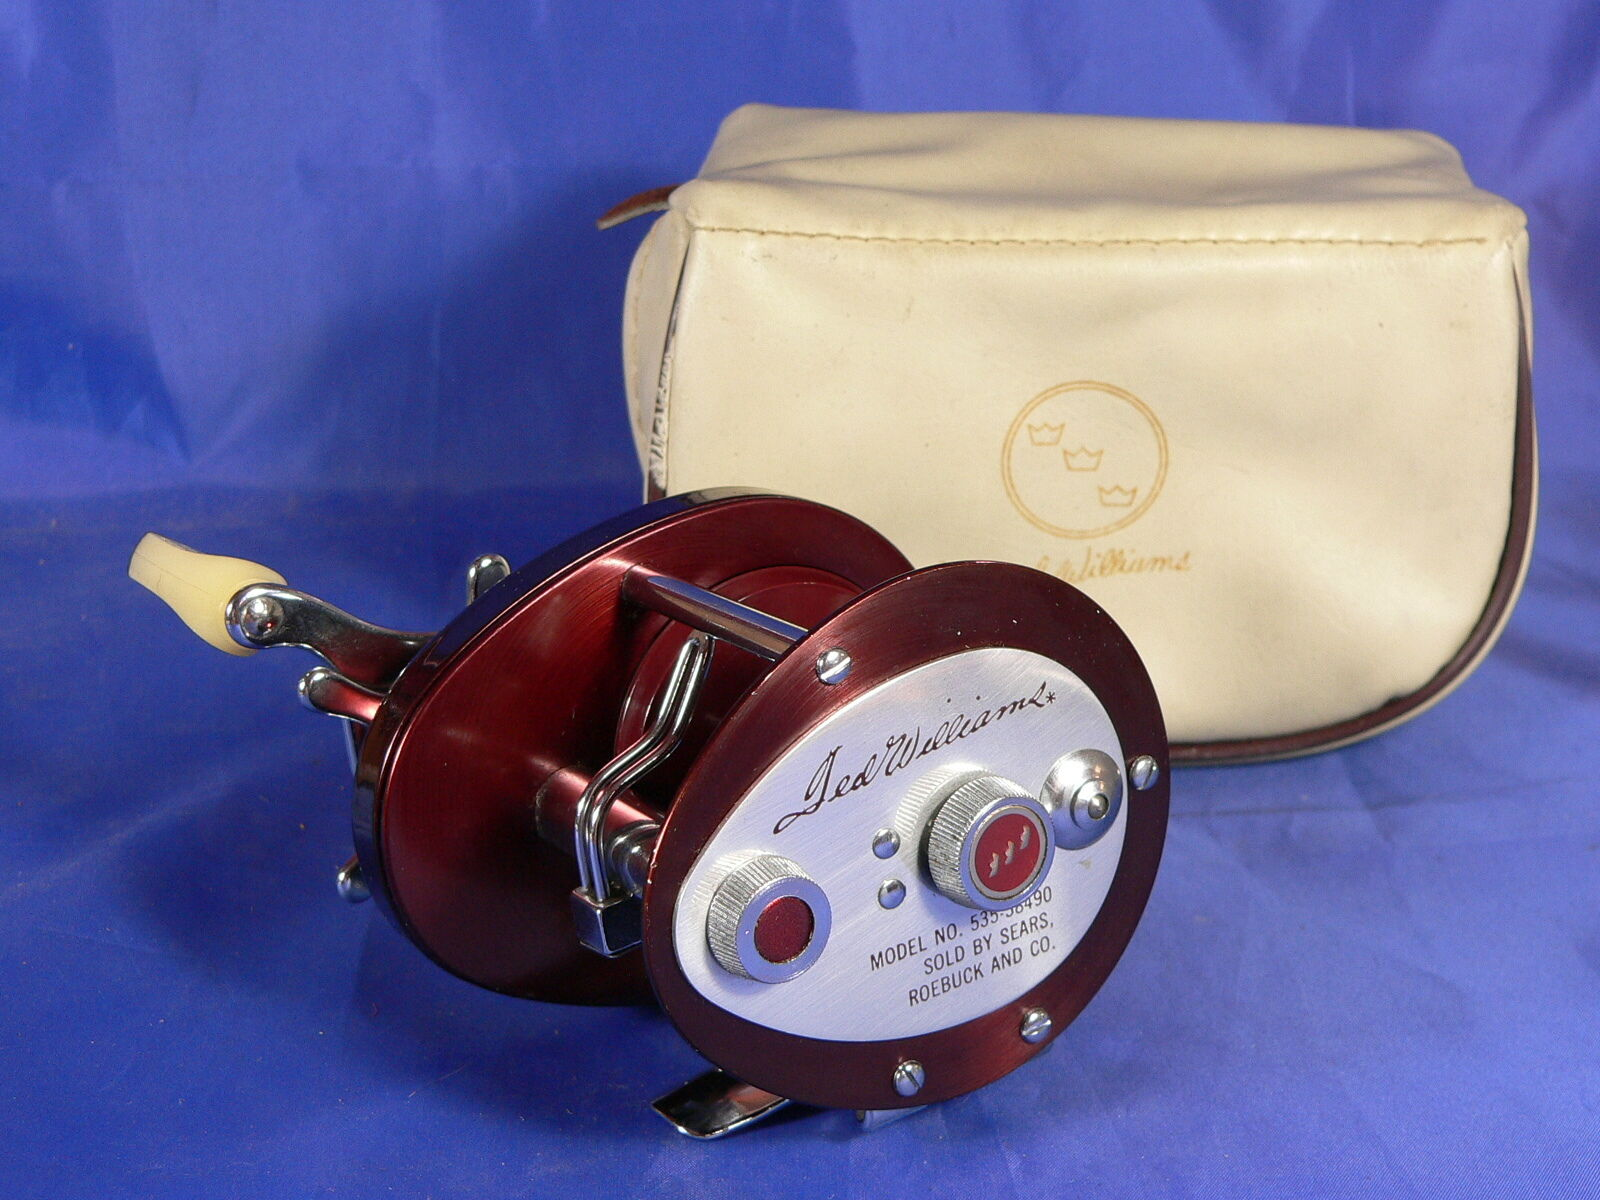 Ted Williams model n° 53538490 nuovo, new, made in U.S.A. bait caster reel